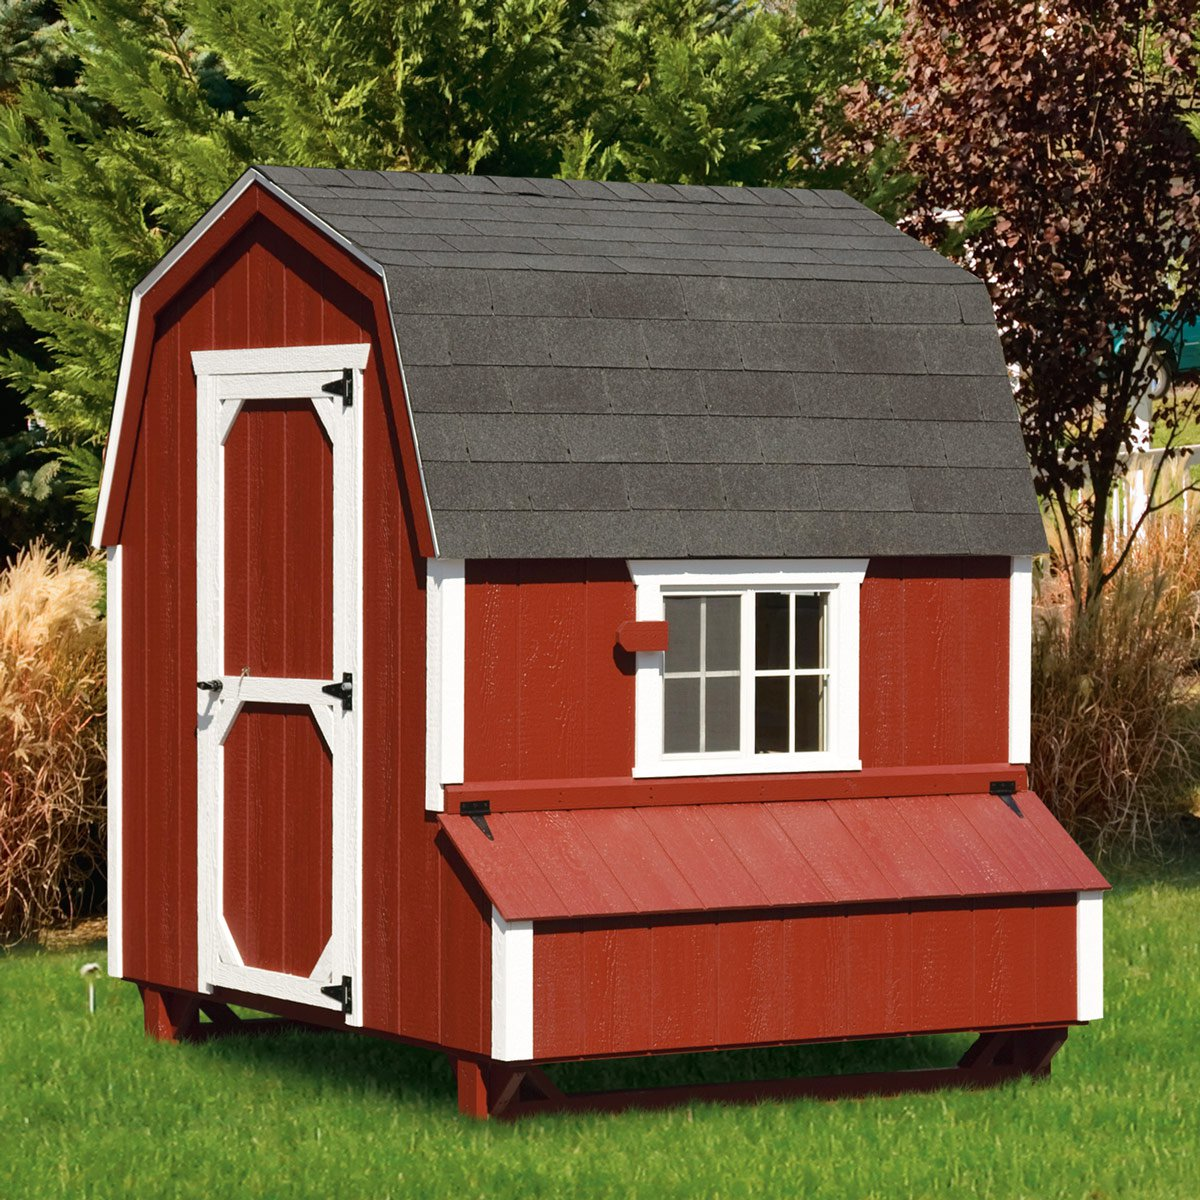 Dutch style 6x6 chicken coop up to 20 chickens from my for Chicken coop size for 6 chickens